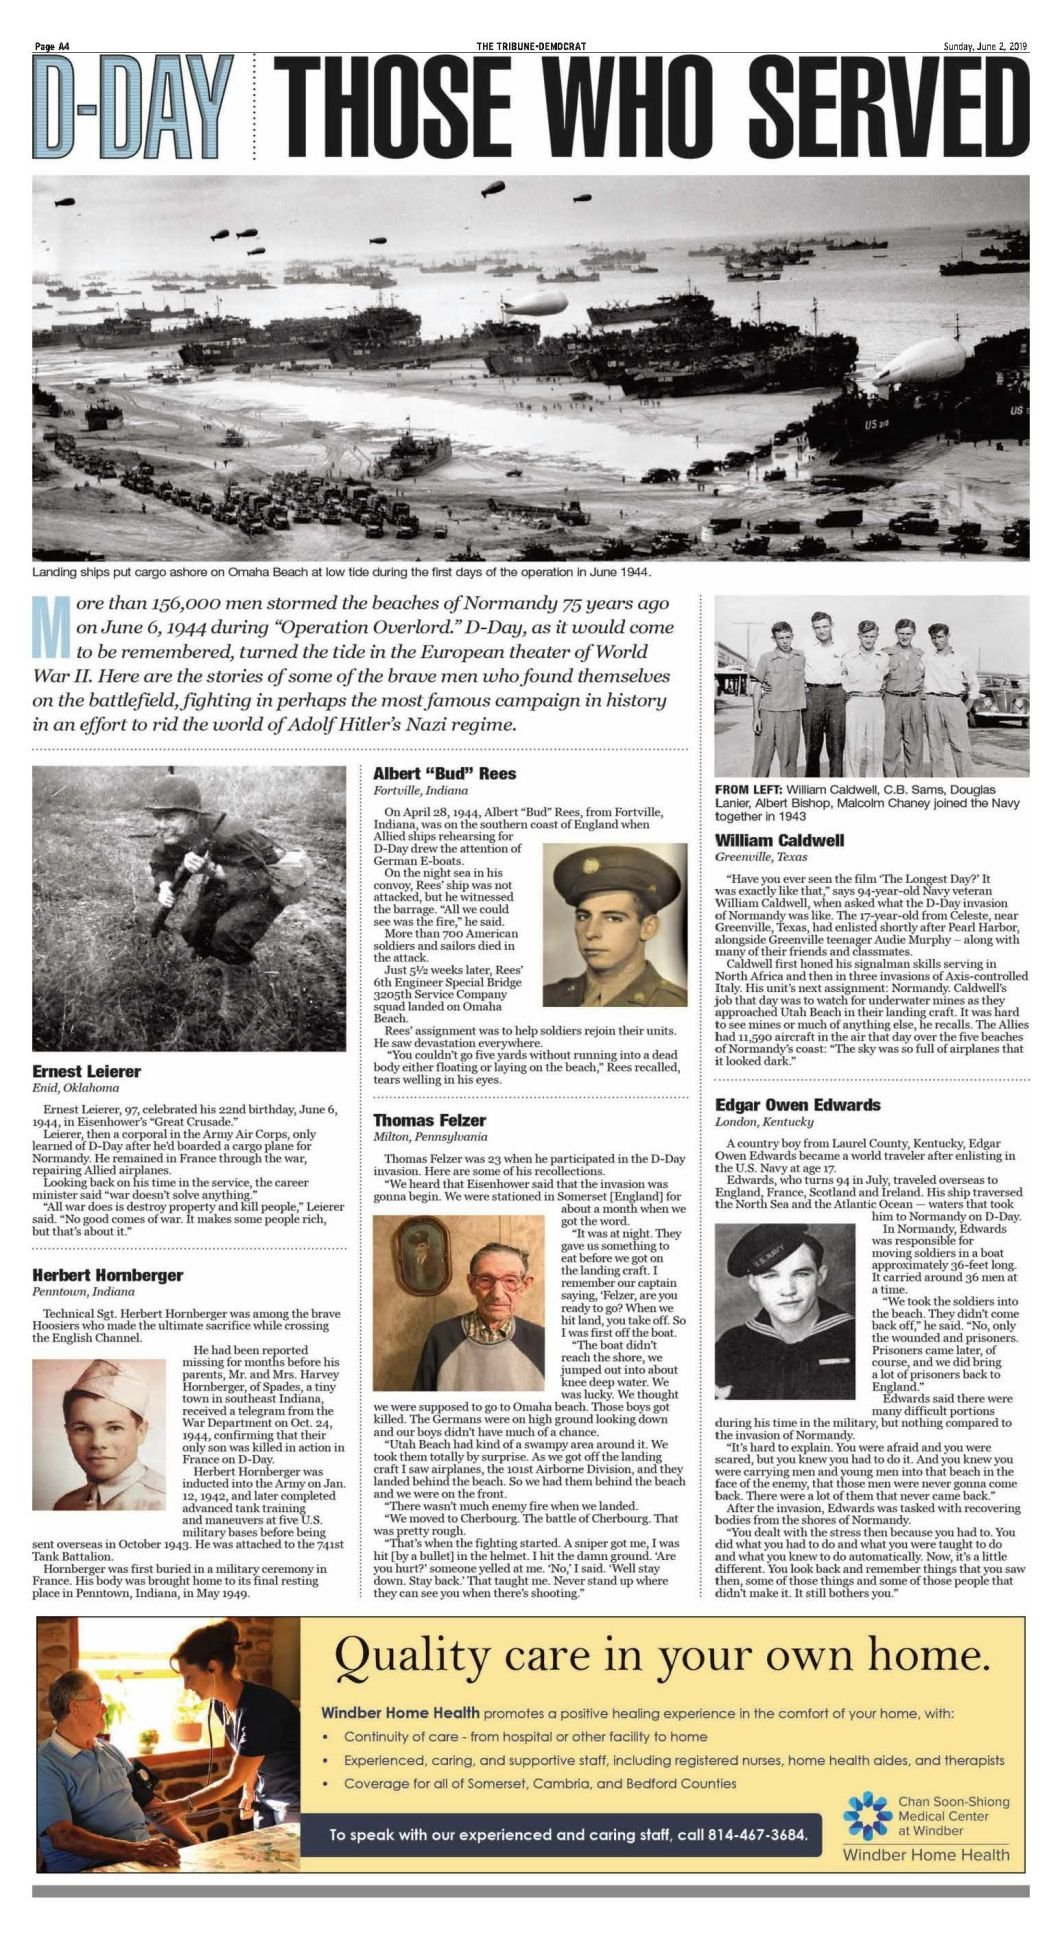 D-DAY PAGE A4 SUNDAY JUNE 2